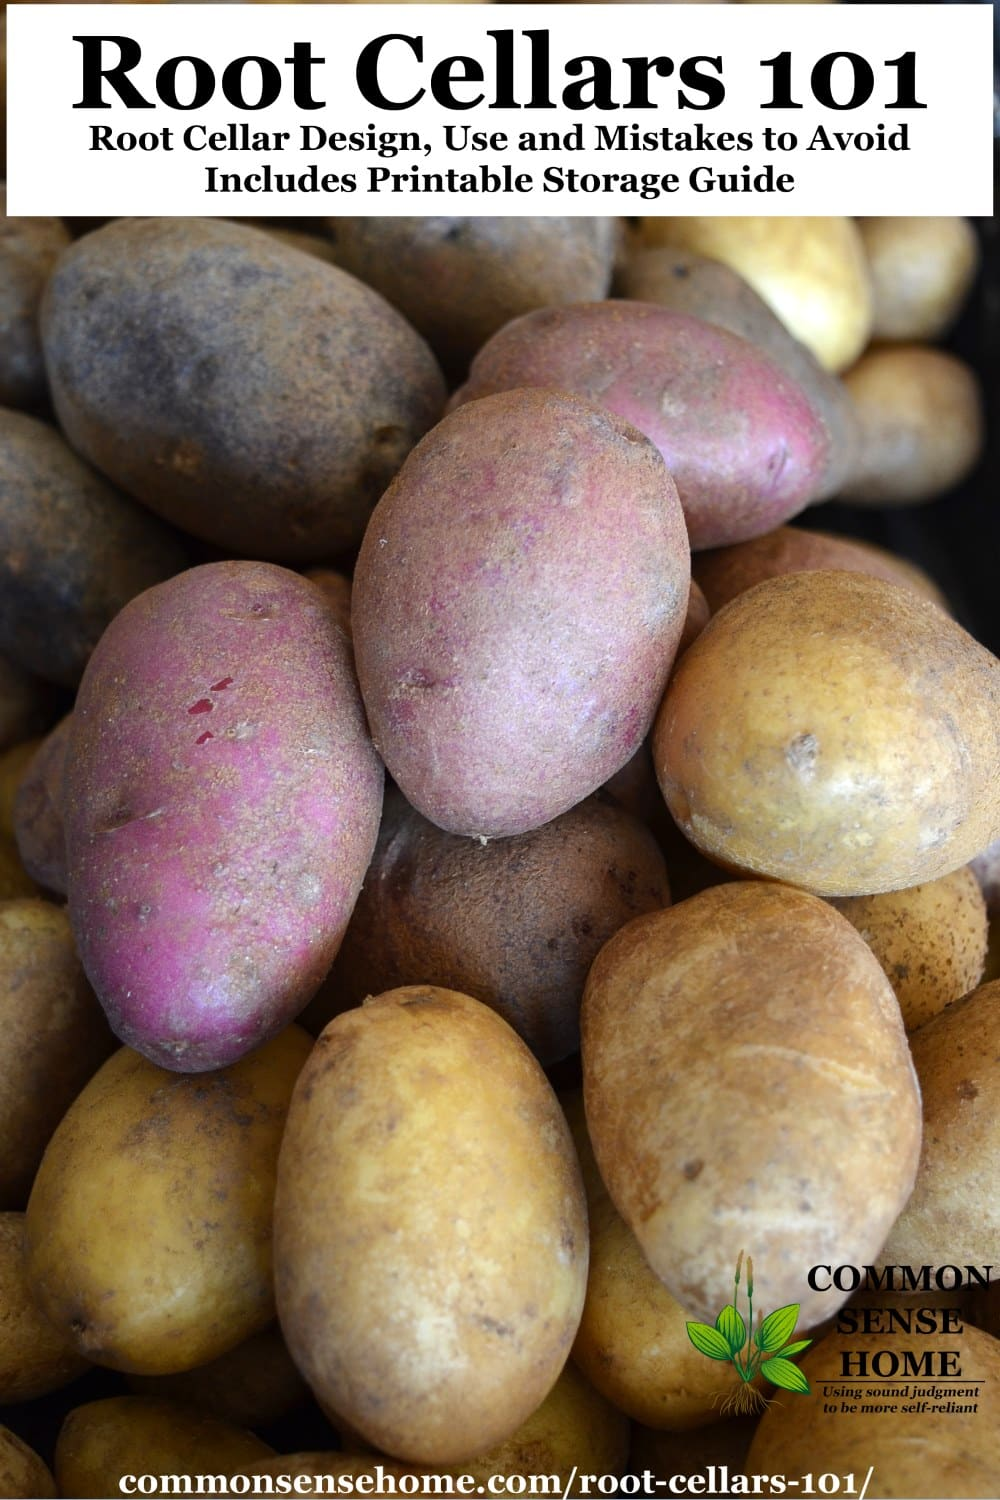 stored potatoes